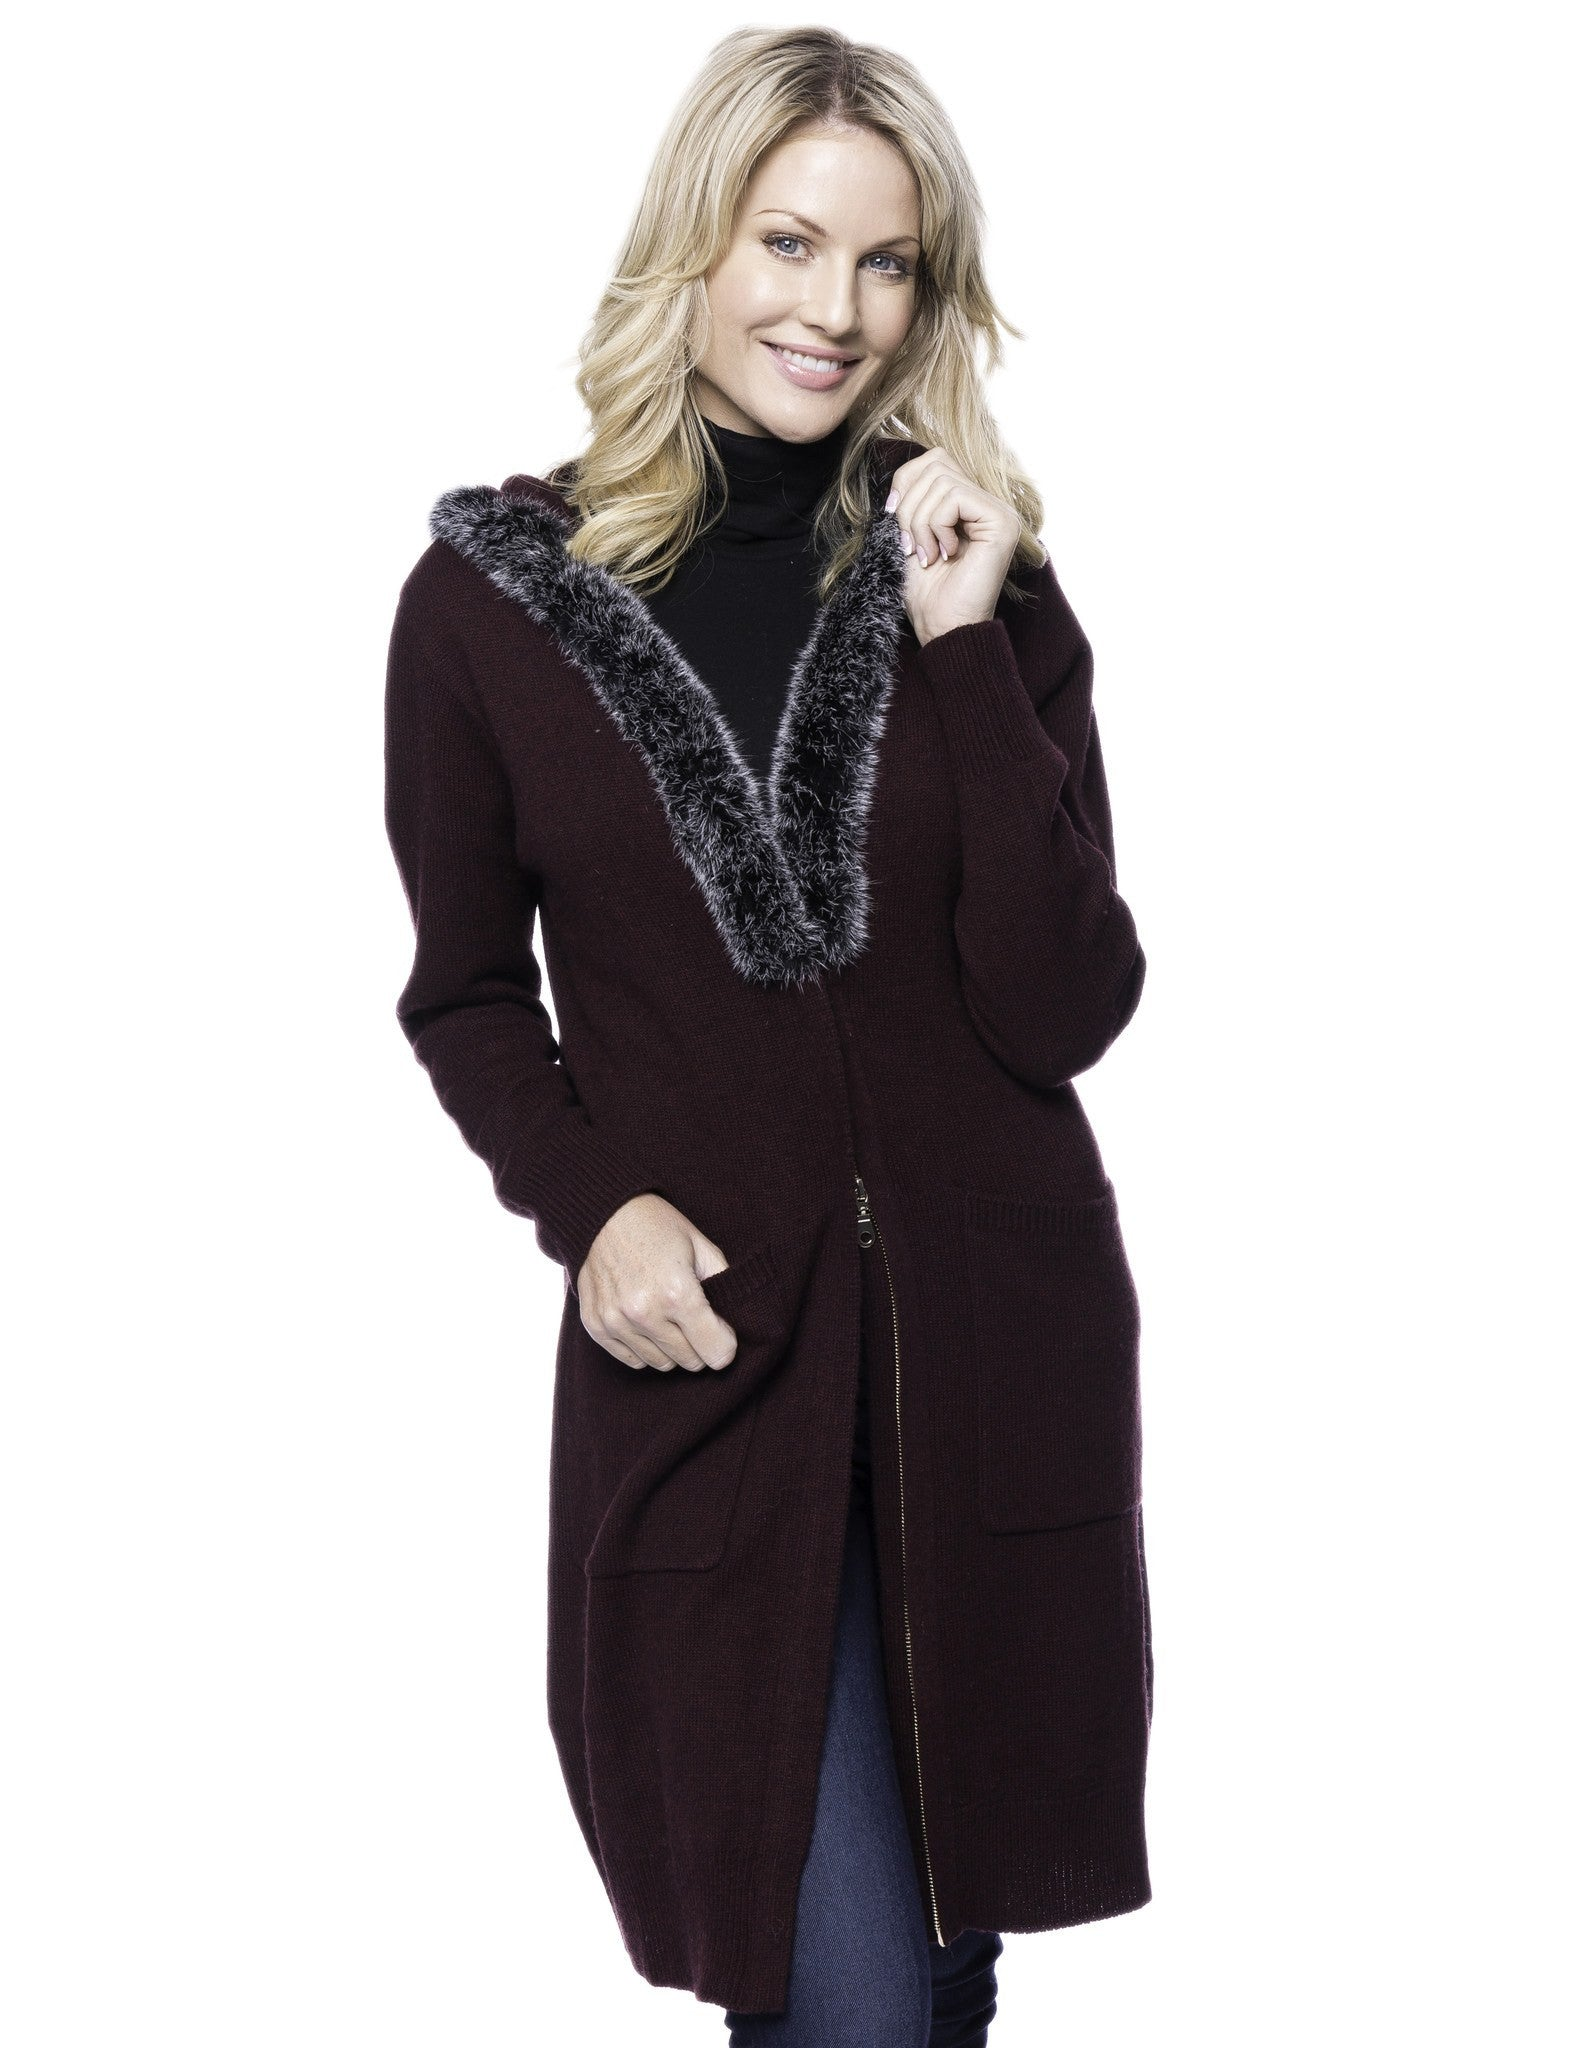 Tocco Reale Women's Wool Blend Zip Cardigan with Fur Trim Hood - Bordeaux